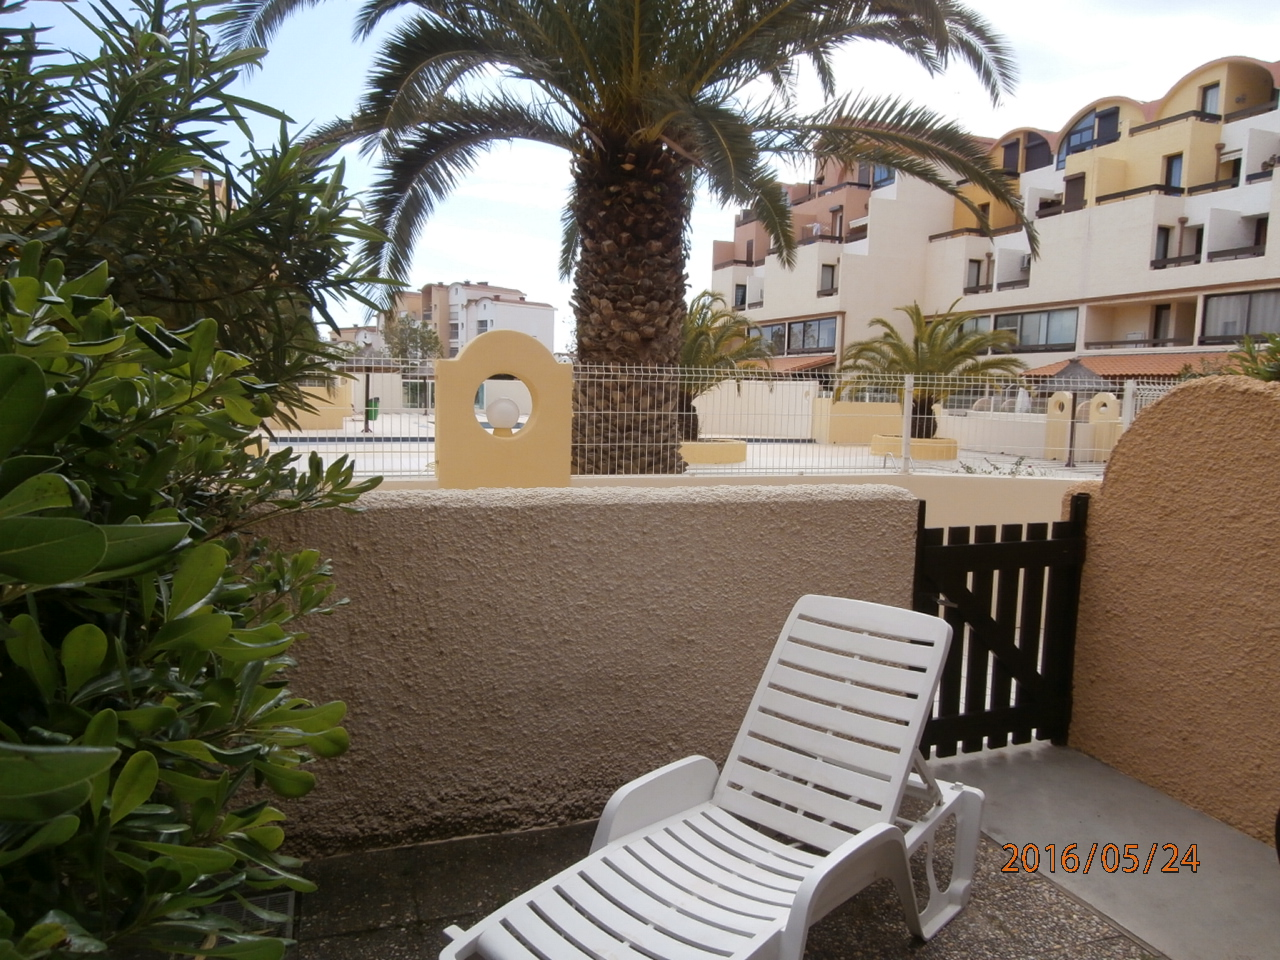 Gruissan appart st alcove 4 personnes for Appart hotel 4 personnes